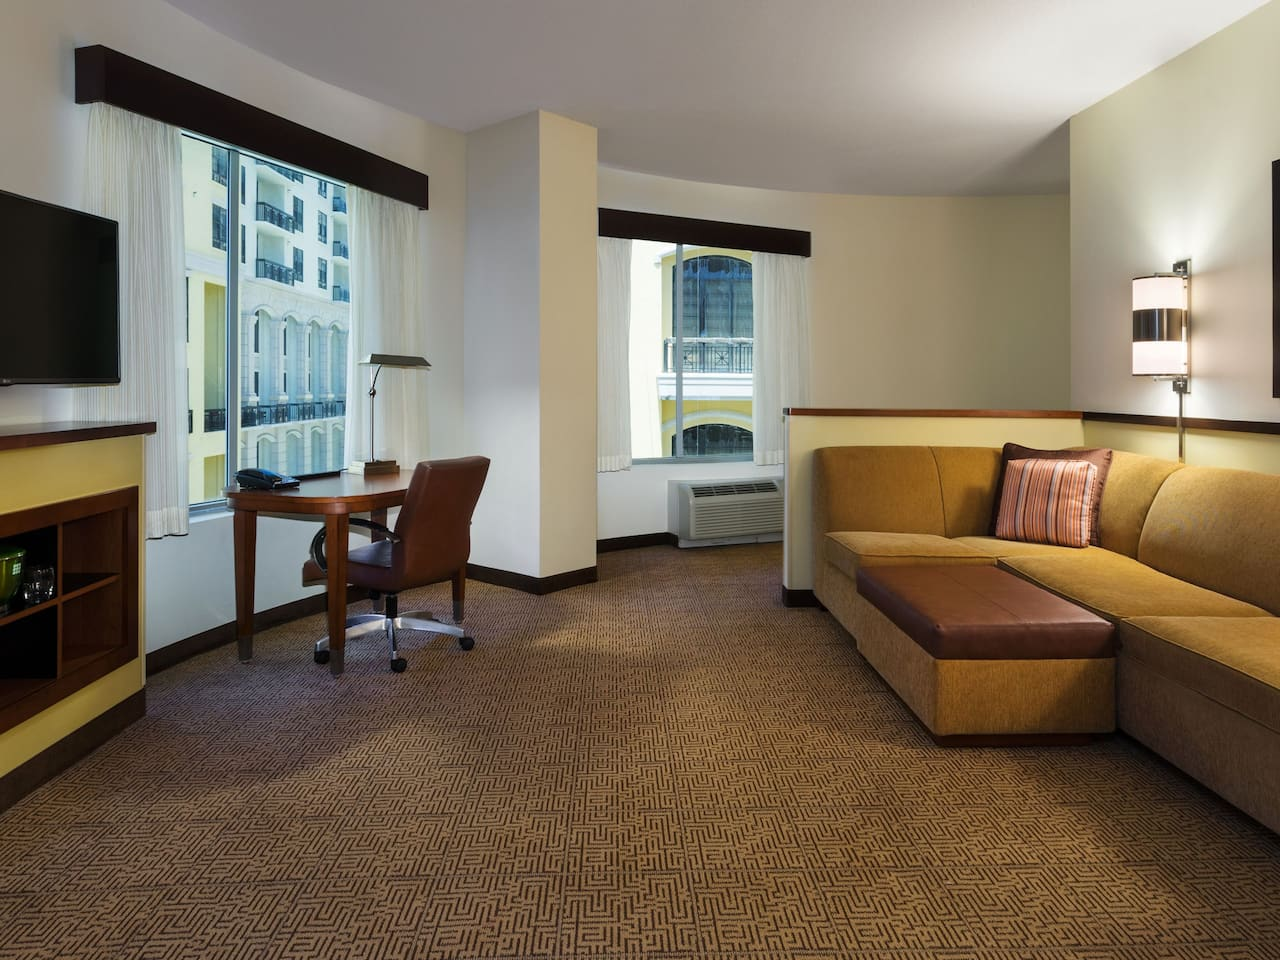 Hyatt Place West Palm Beach Downtown Room Layout